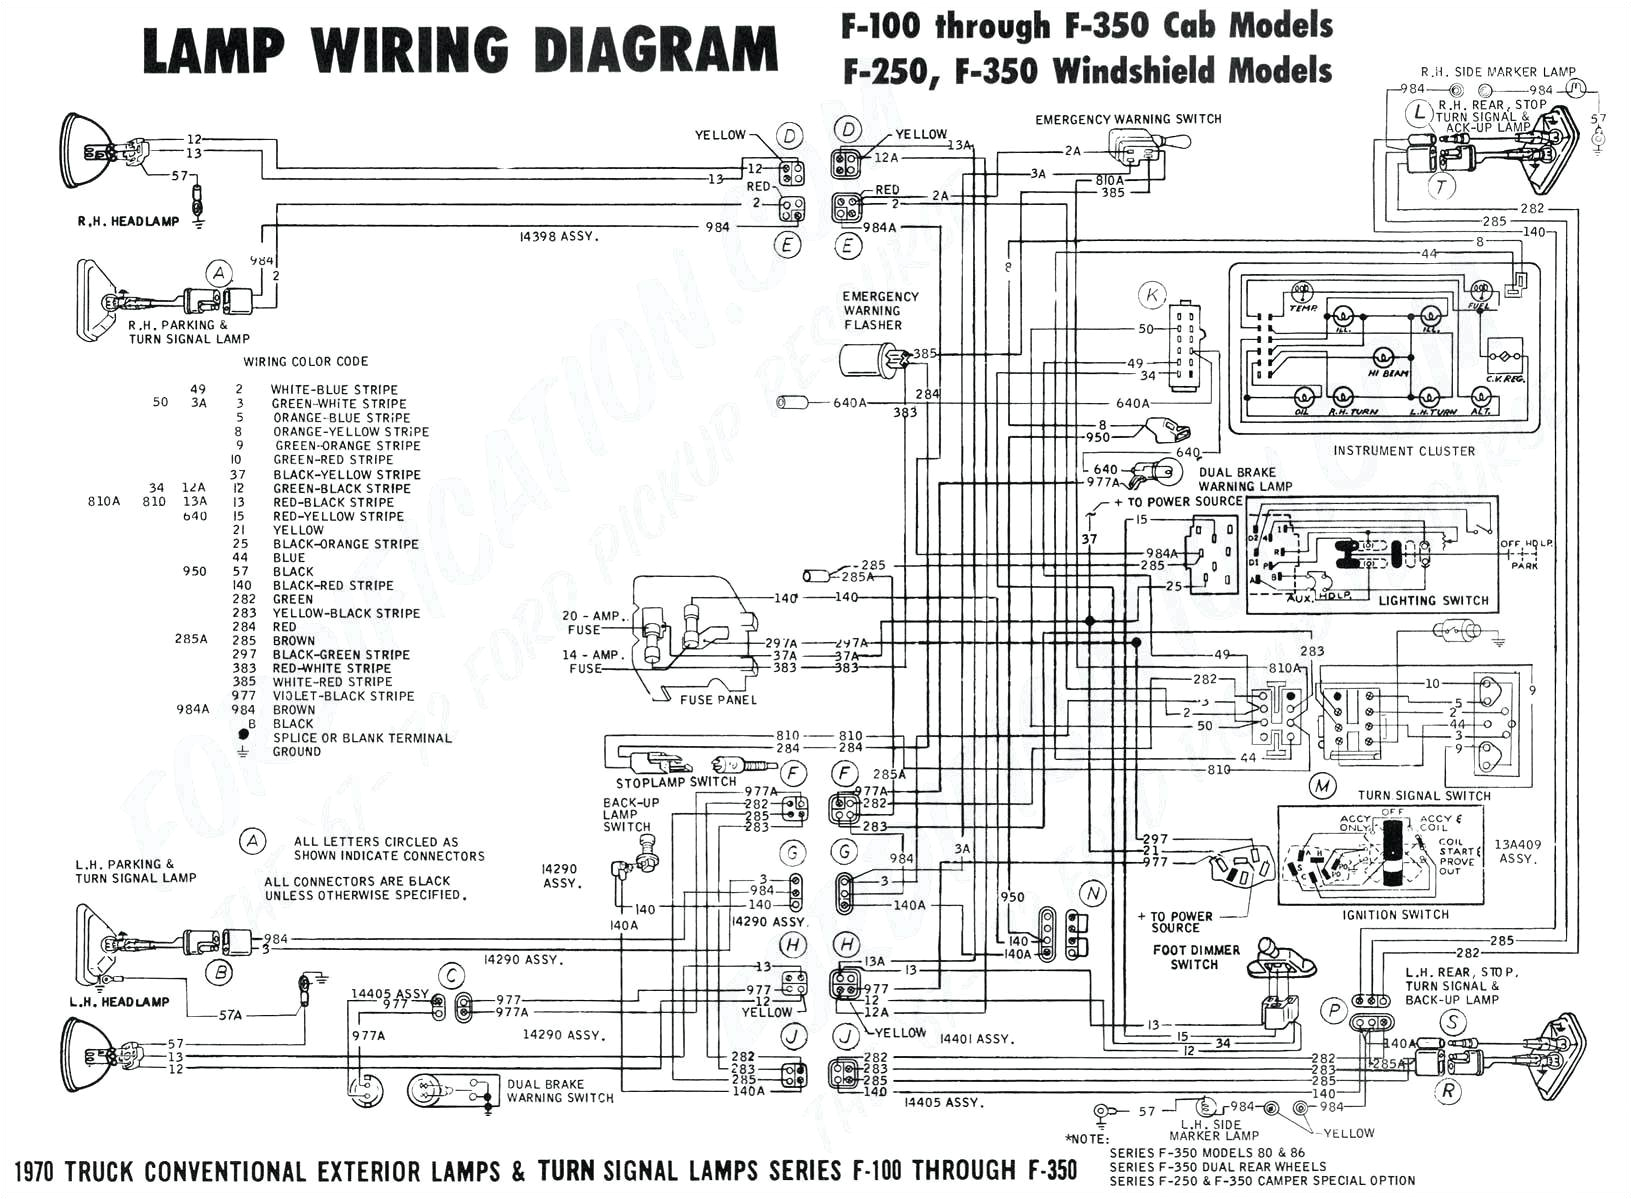 Three Phase Star Delta Wiring Diagram 9 Wire Motor Diagram Manual E Book